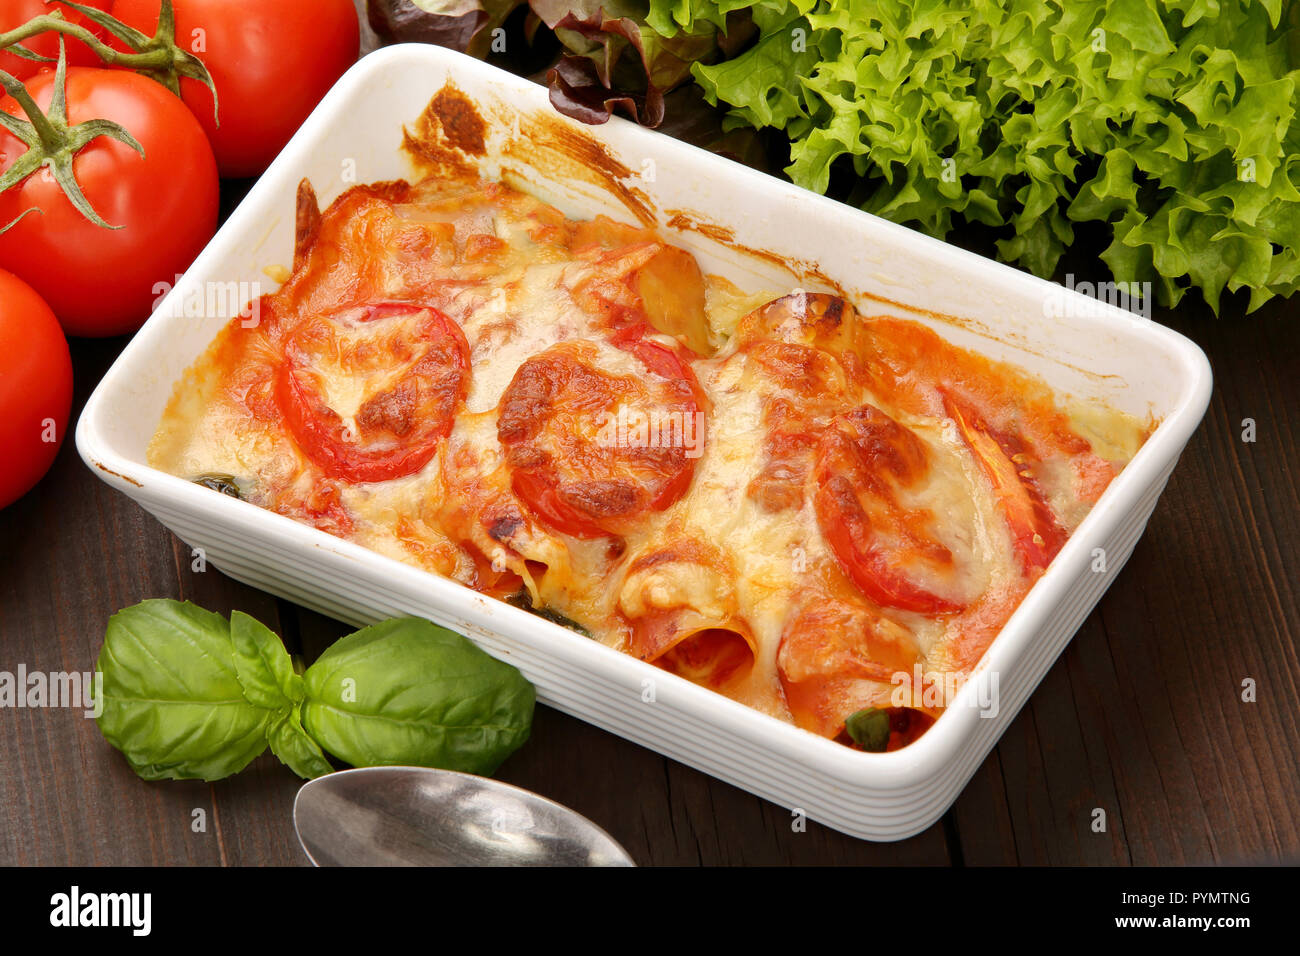 Caneloni stuffed with meat and melted cheese in white bowl over grunge wood background Stock Photo